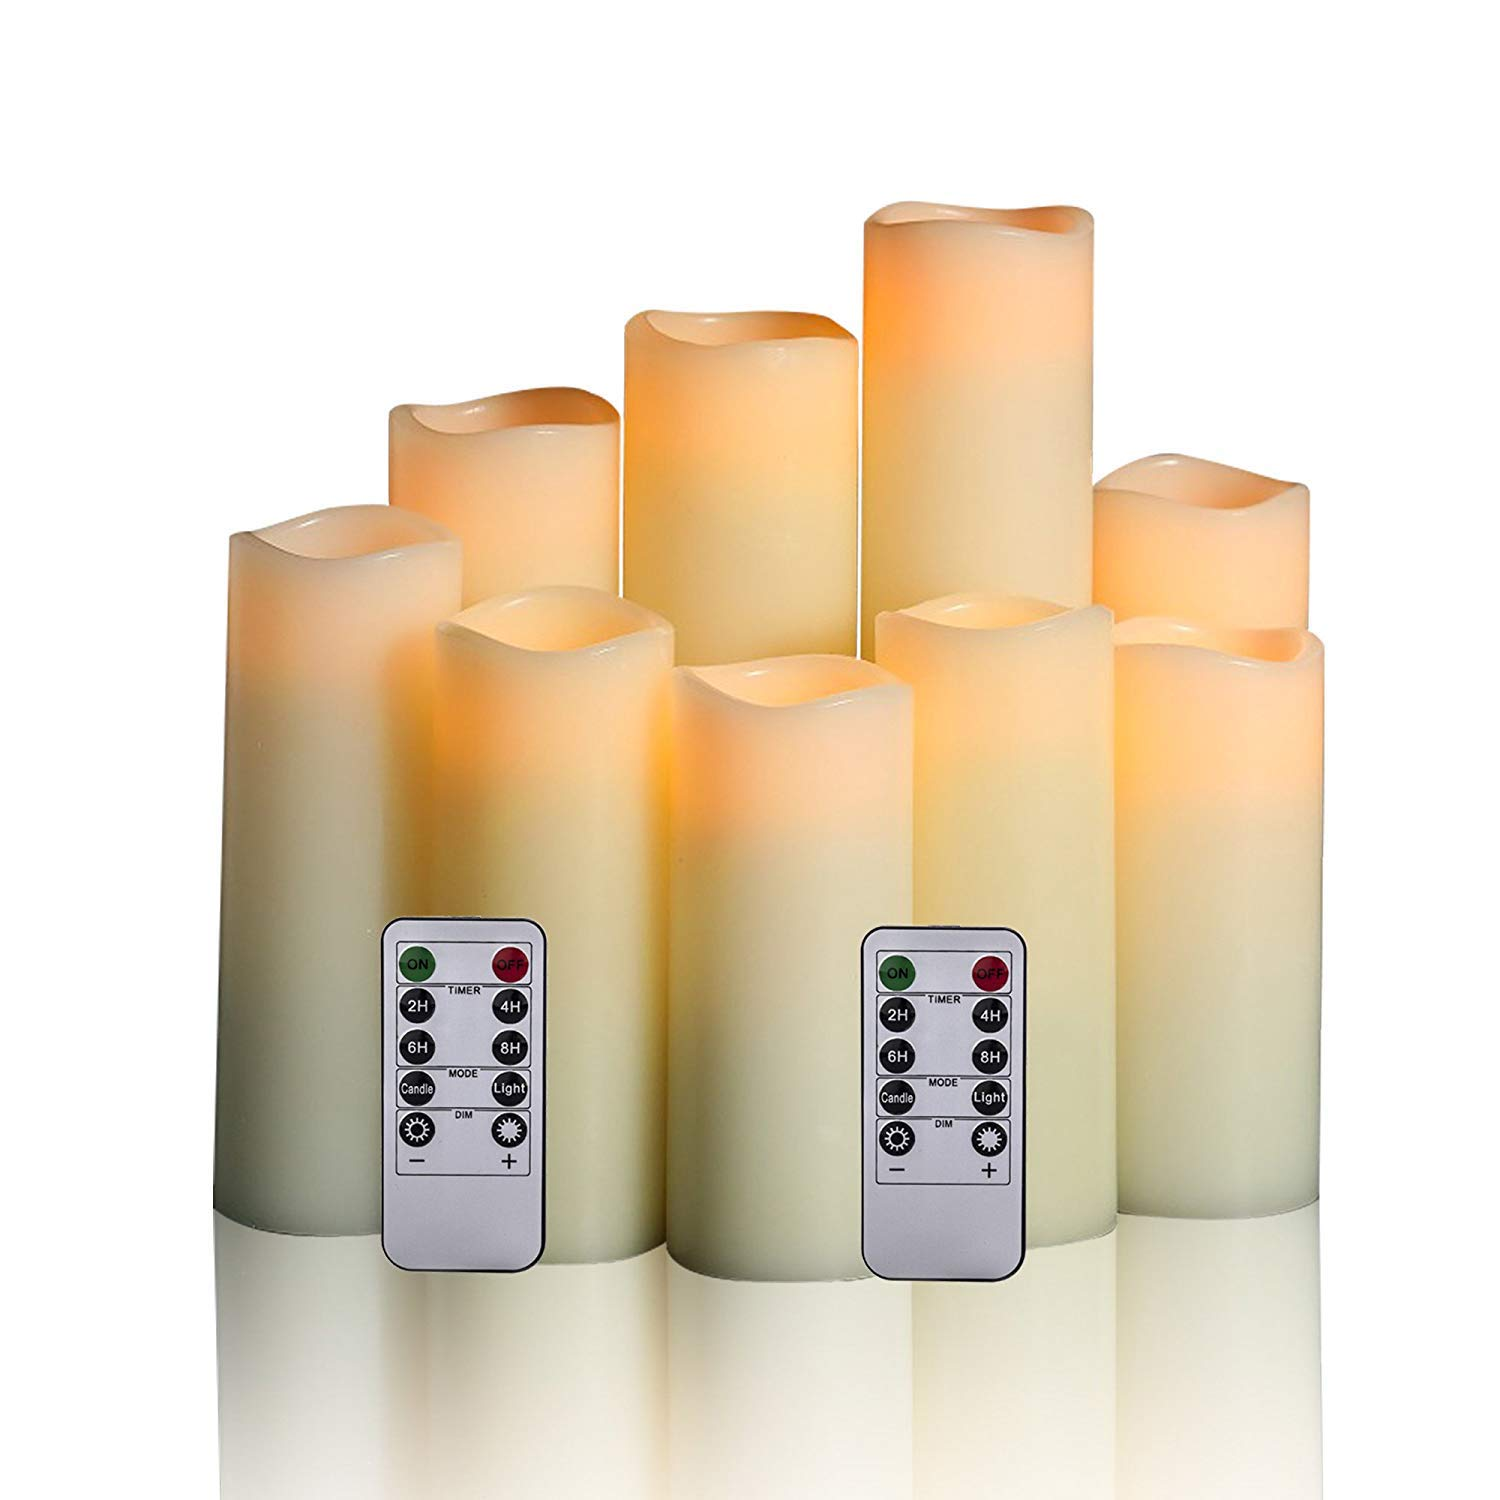 Antizer Flameless Candles Battery Operate Drip-Less Real Wax Pillars Include Realistic Flickering LED Flames and 10-Key Remote Control with 24-Hour Timer Function (9-Pack)